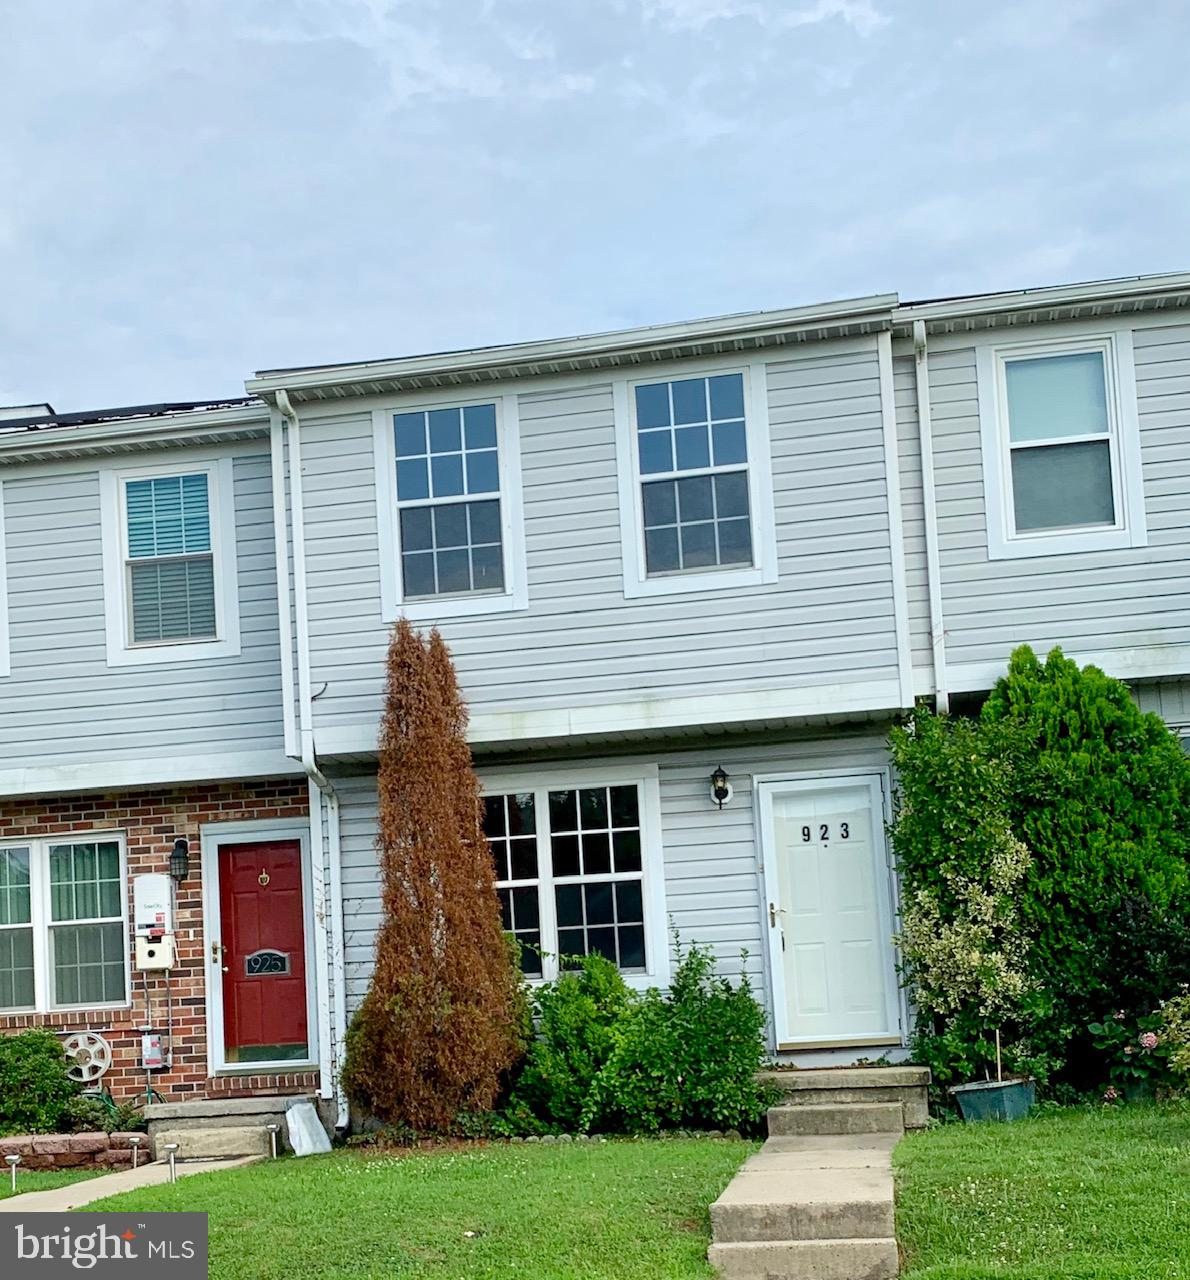 Dramatic price drop! Priced to sell. Starter home, downsizing, investment, it's right here. Both roof and hvac less than 10 years old. Water heater is brand new. Gem with lots of possibilities with a good price tag. Secluded court. No thru traffic. Bring an offer!